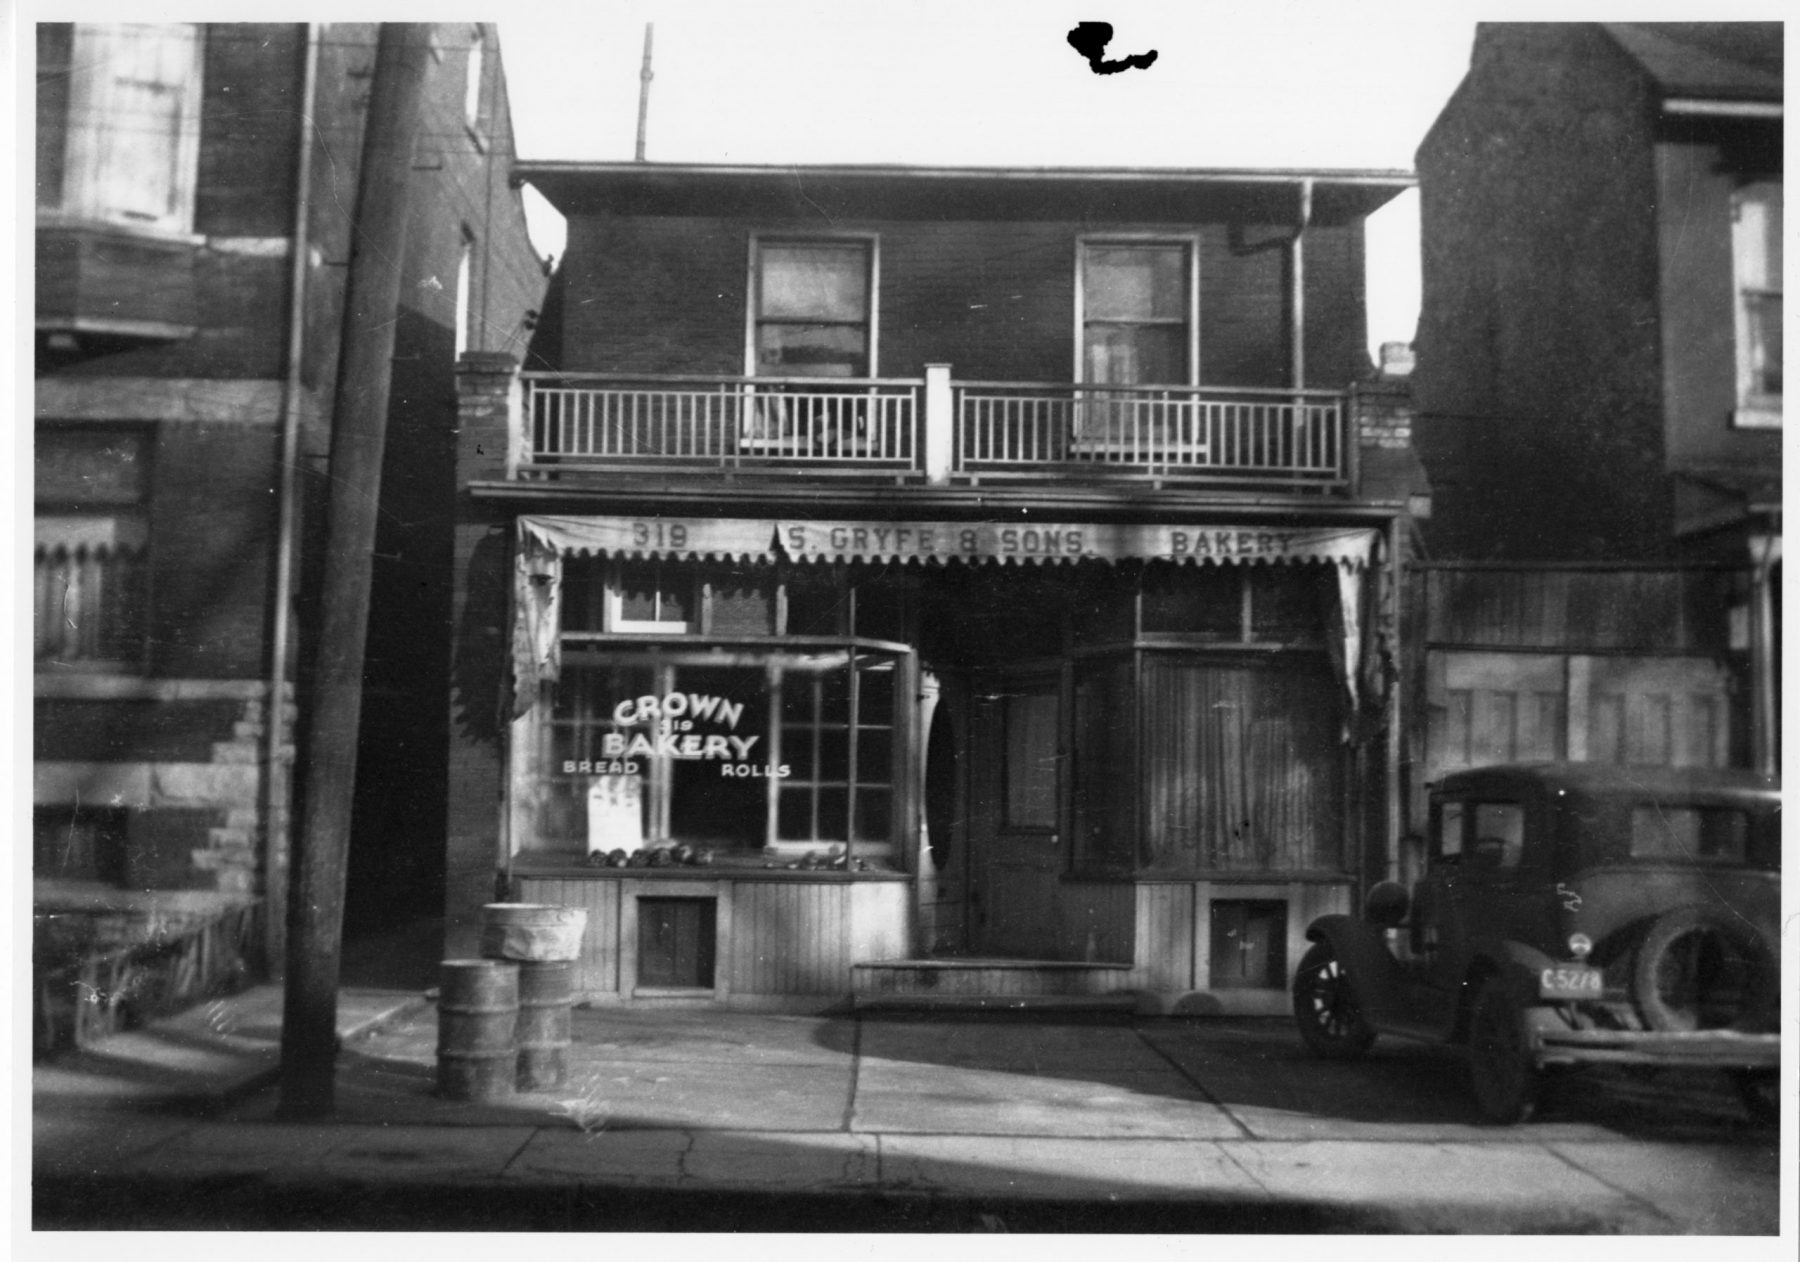 Crown Bakery storefront at 319 Augusta Avenue, ca. 1936. During this time the bakery was operated by the Gryfe family. The bakery was established in the market in 1925 and was famous for its bread and baked goods.   OJA, item 4521.